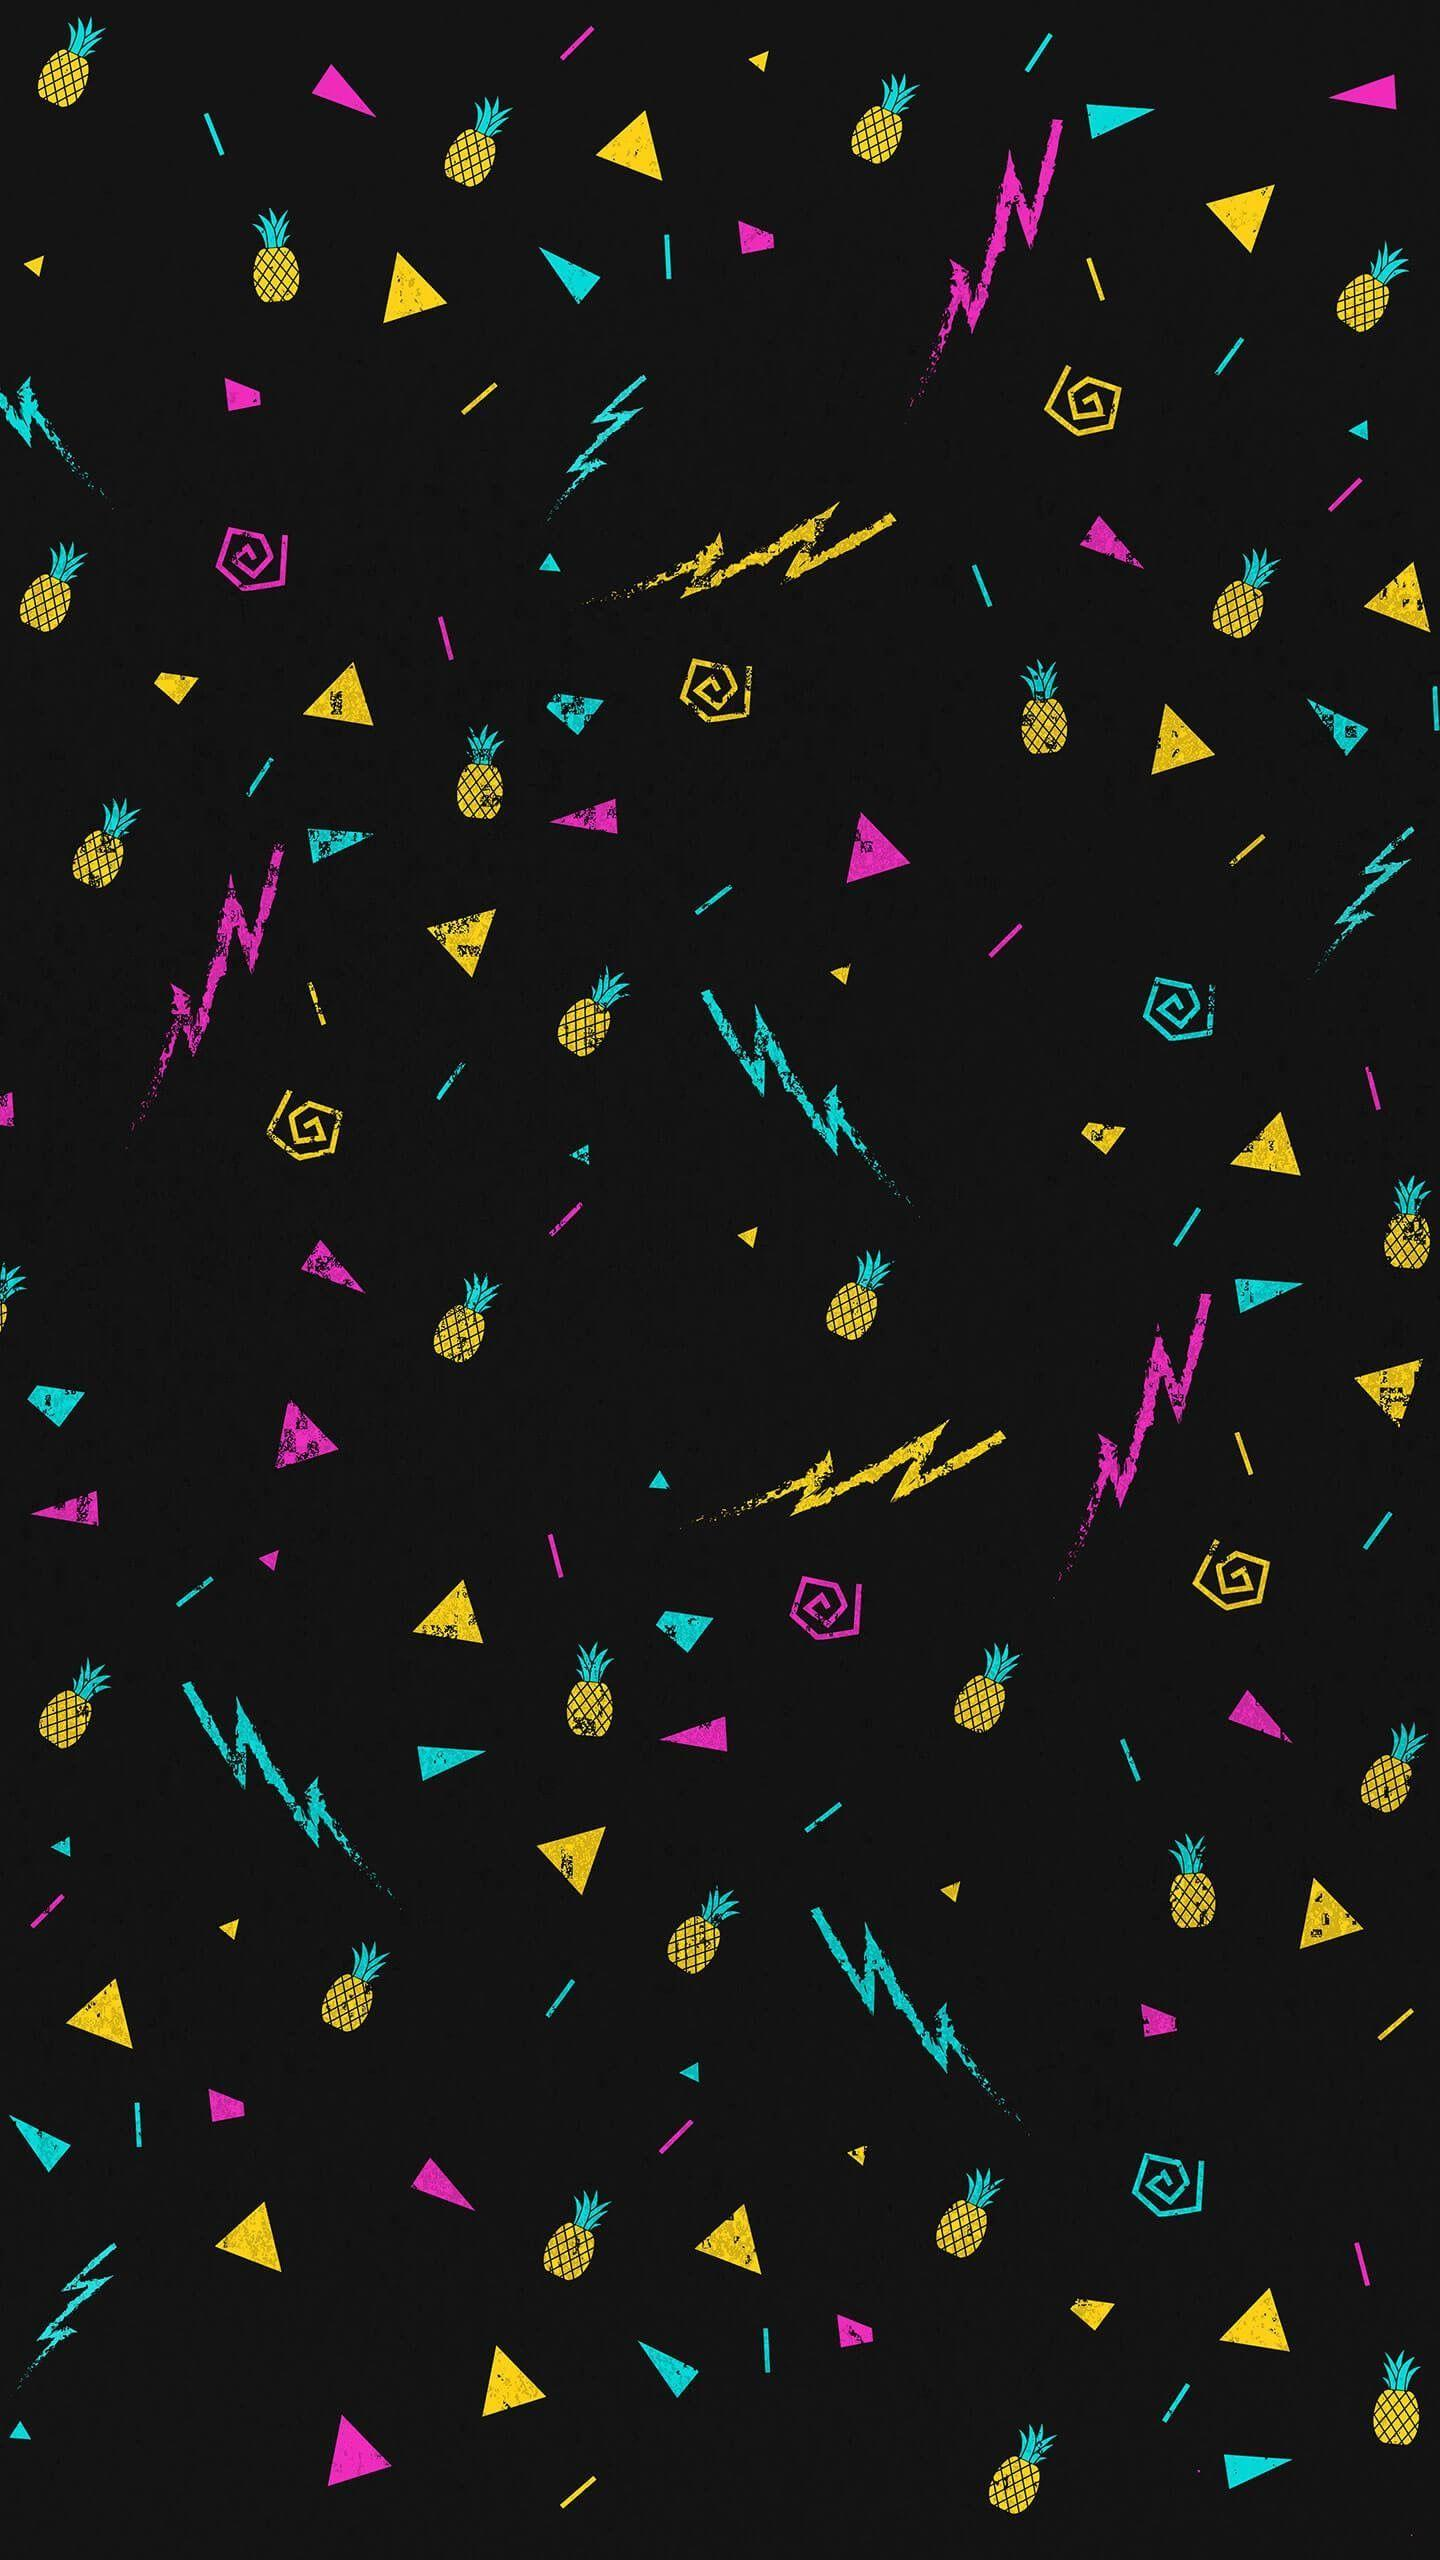 80s Aesthetic Wallpapers Wallpaper Cave